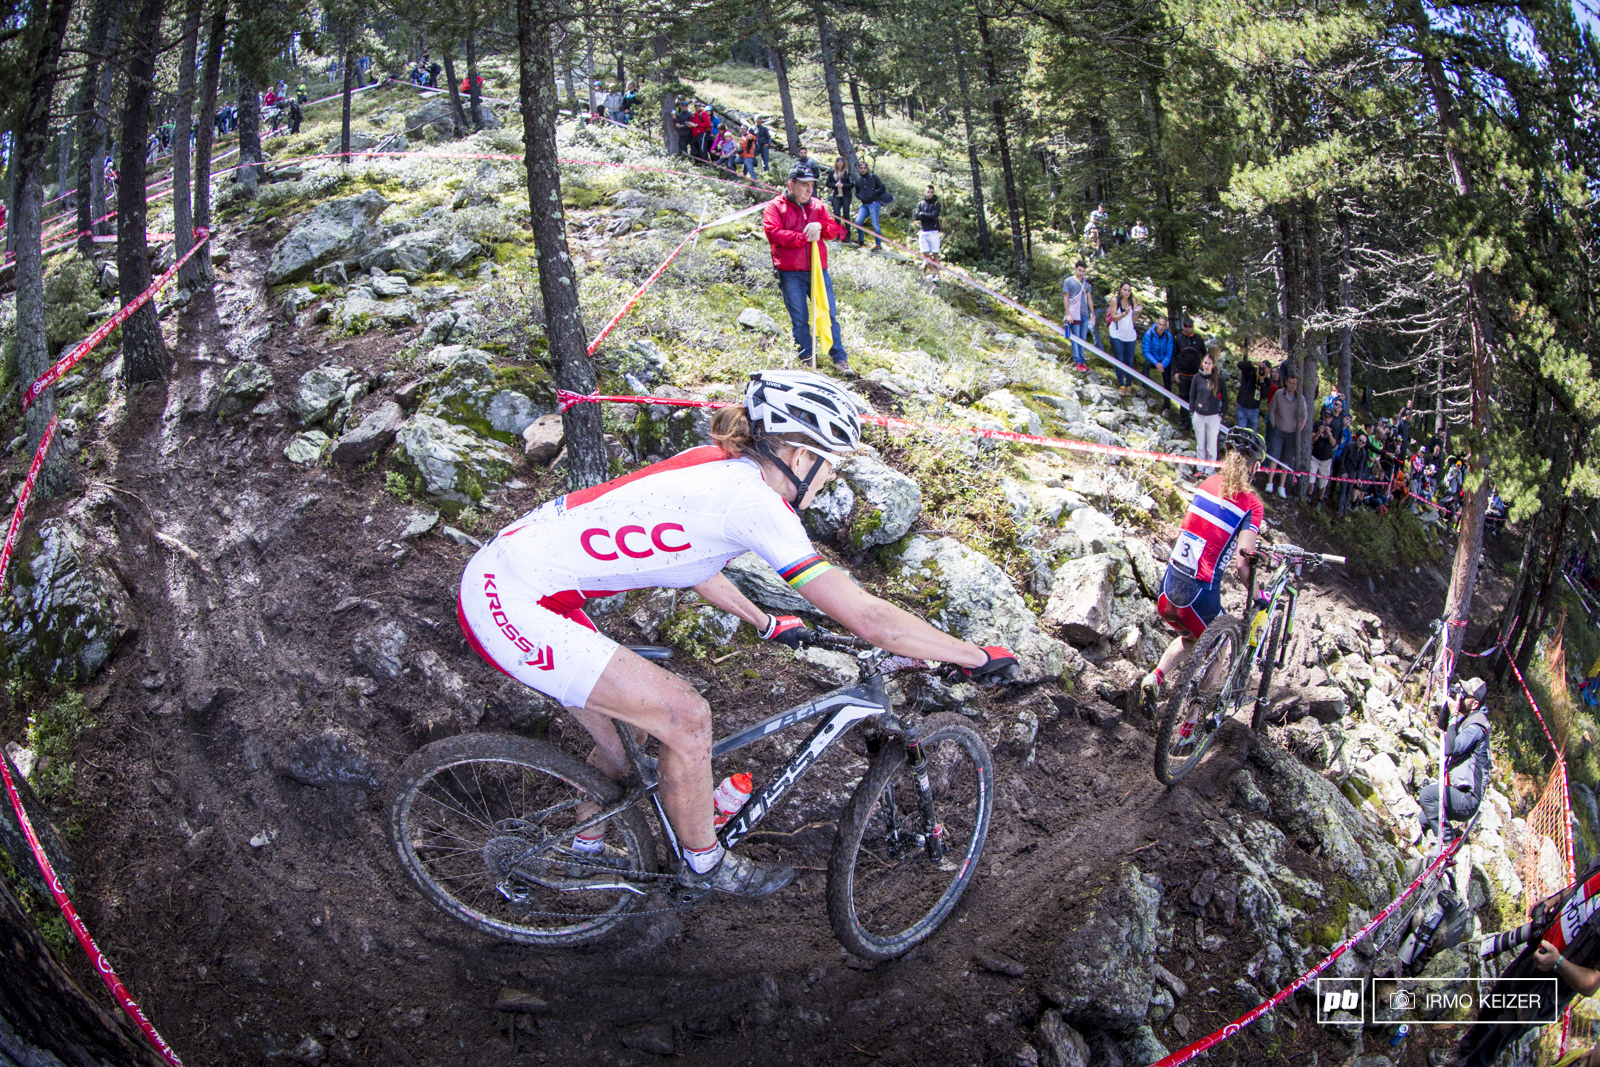 Gunn-Rita Dahle-Flesjaa refused to get out of Maja Wloszczowska s way as she walks down the course s most technical descent. It cost the Polish rider quite some time.